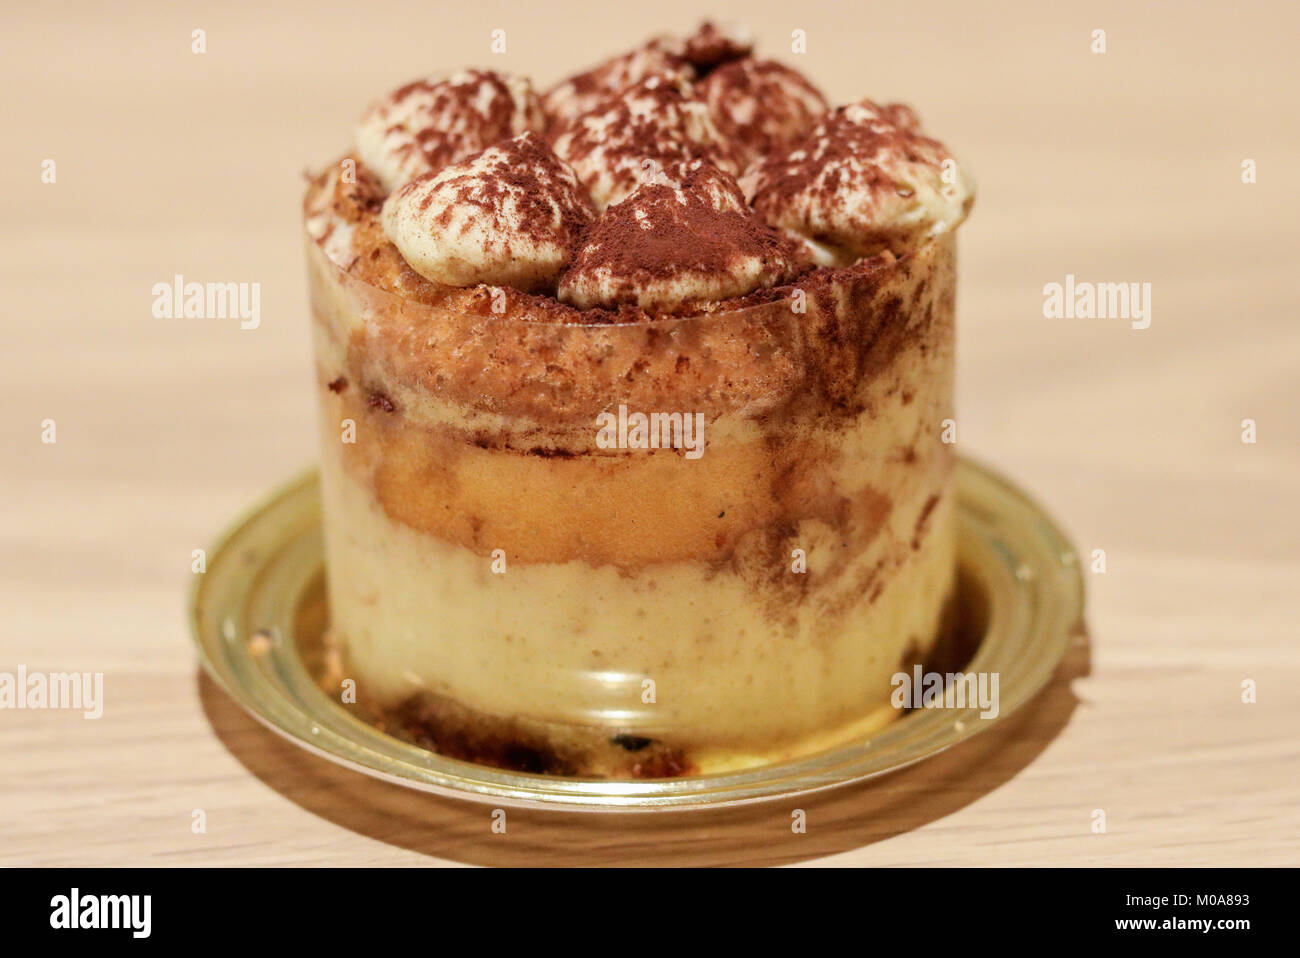 monoportion of italian tiramisù, made with biscuits, mascarpone cheese, coffee and chocolate - Stock Image